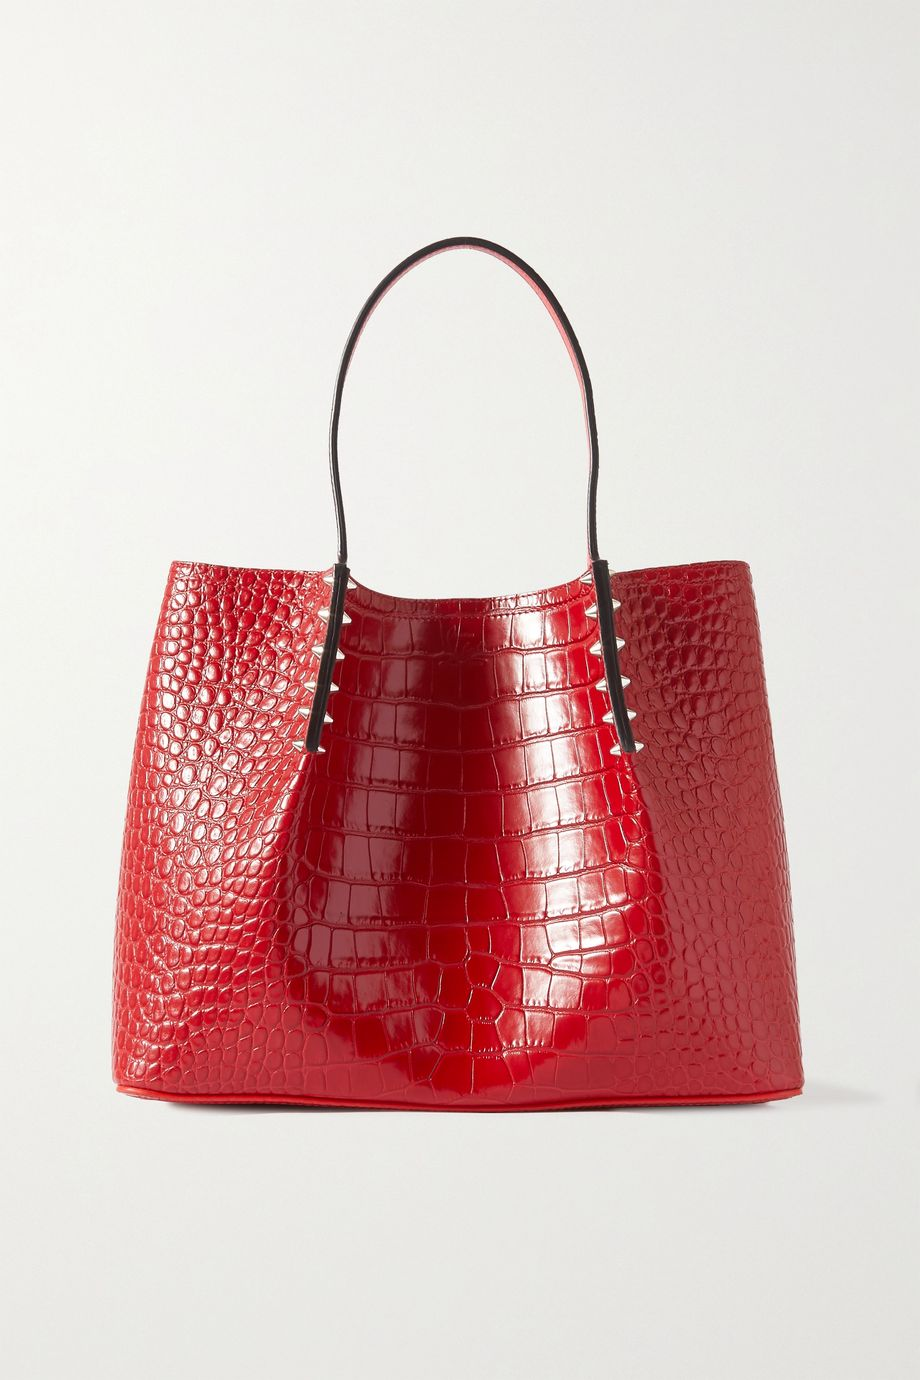 Christian Louboutin Cabarock small spiked croc-effect leather tote